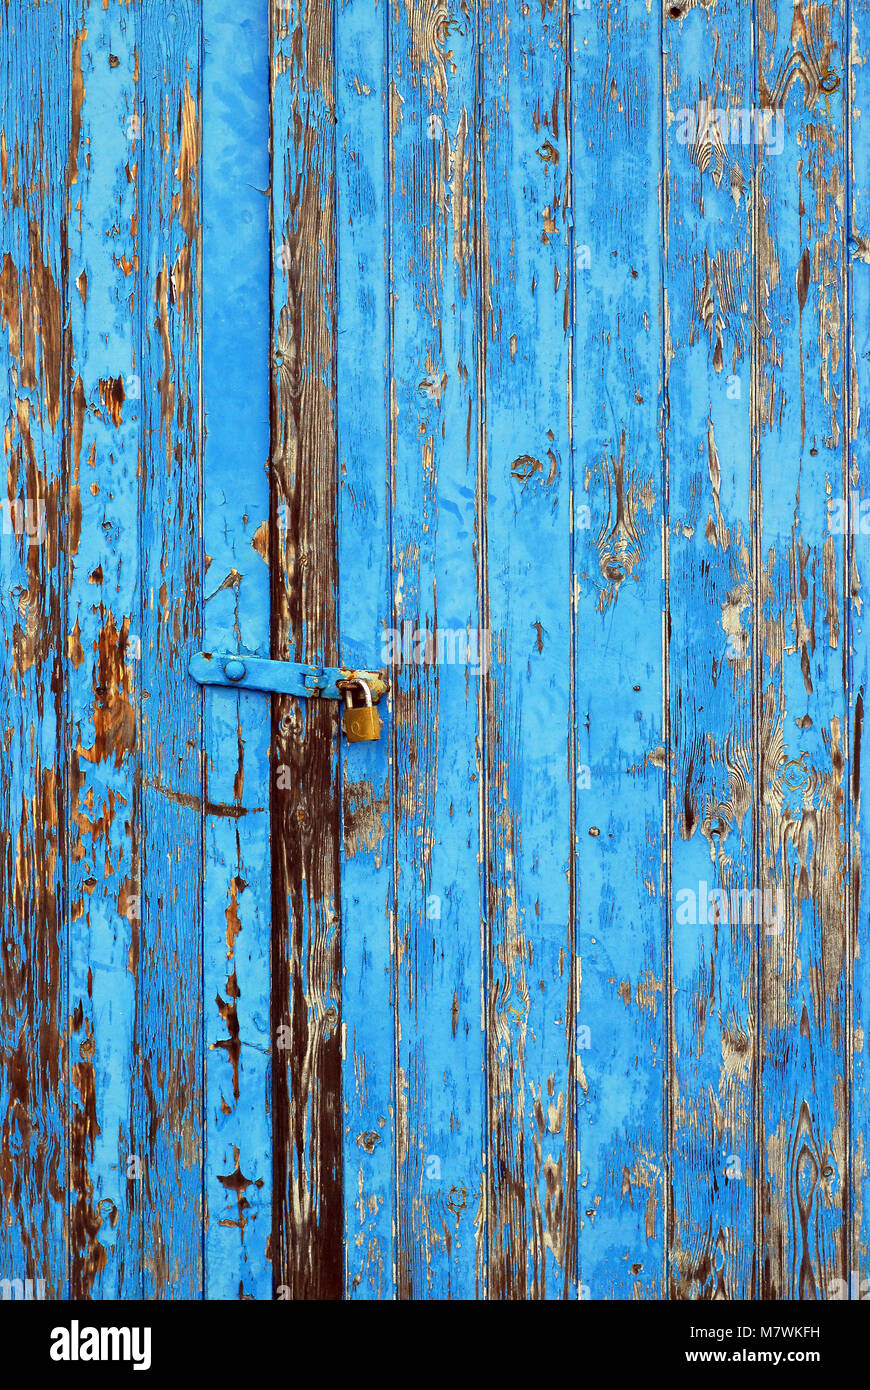 weathered wood planks painted blue with peeling and flaking paint showing some wood grain from a locked garage shed - Stock Image